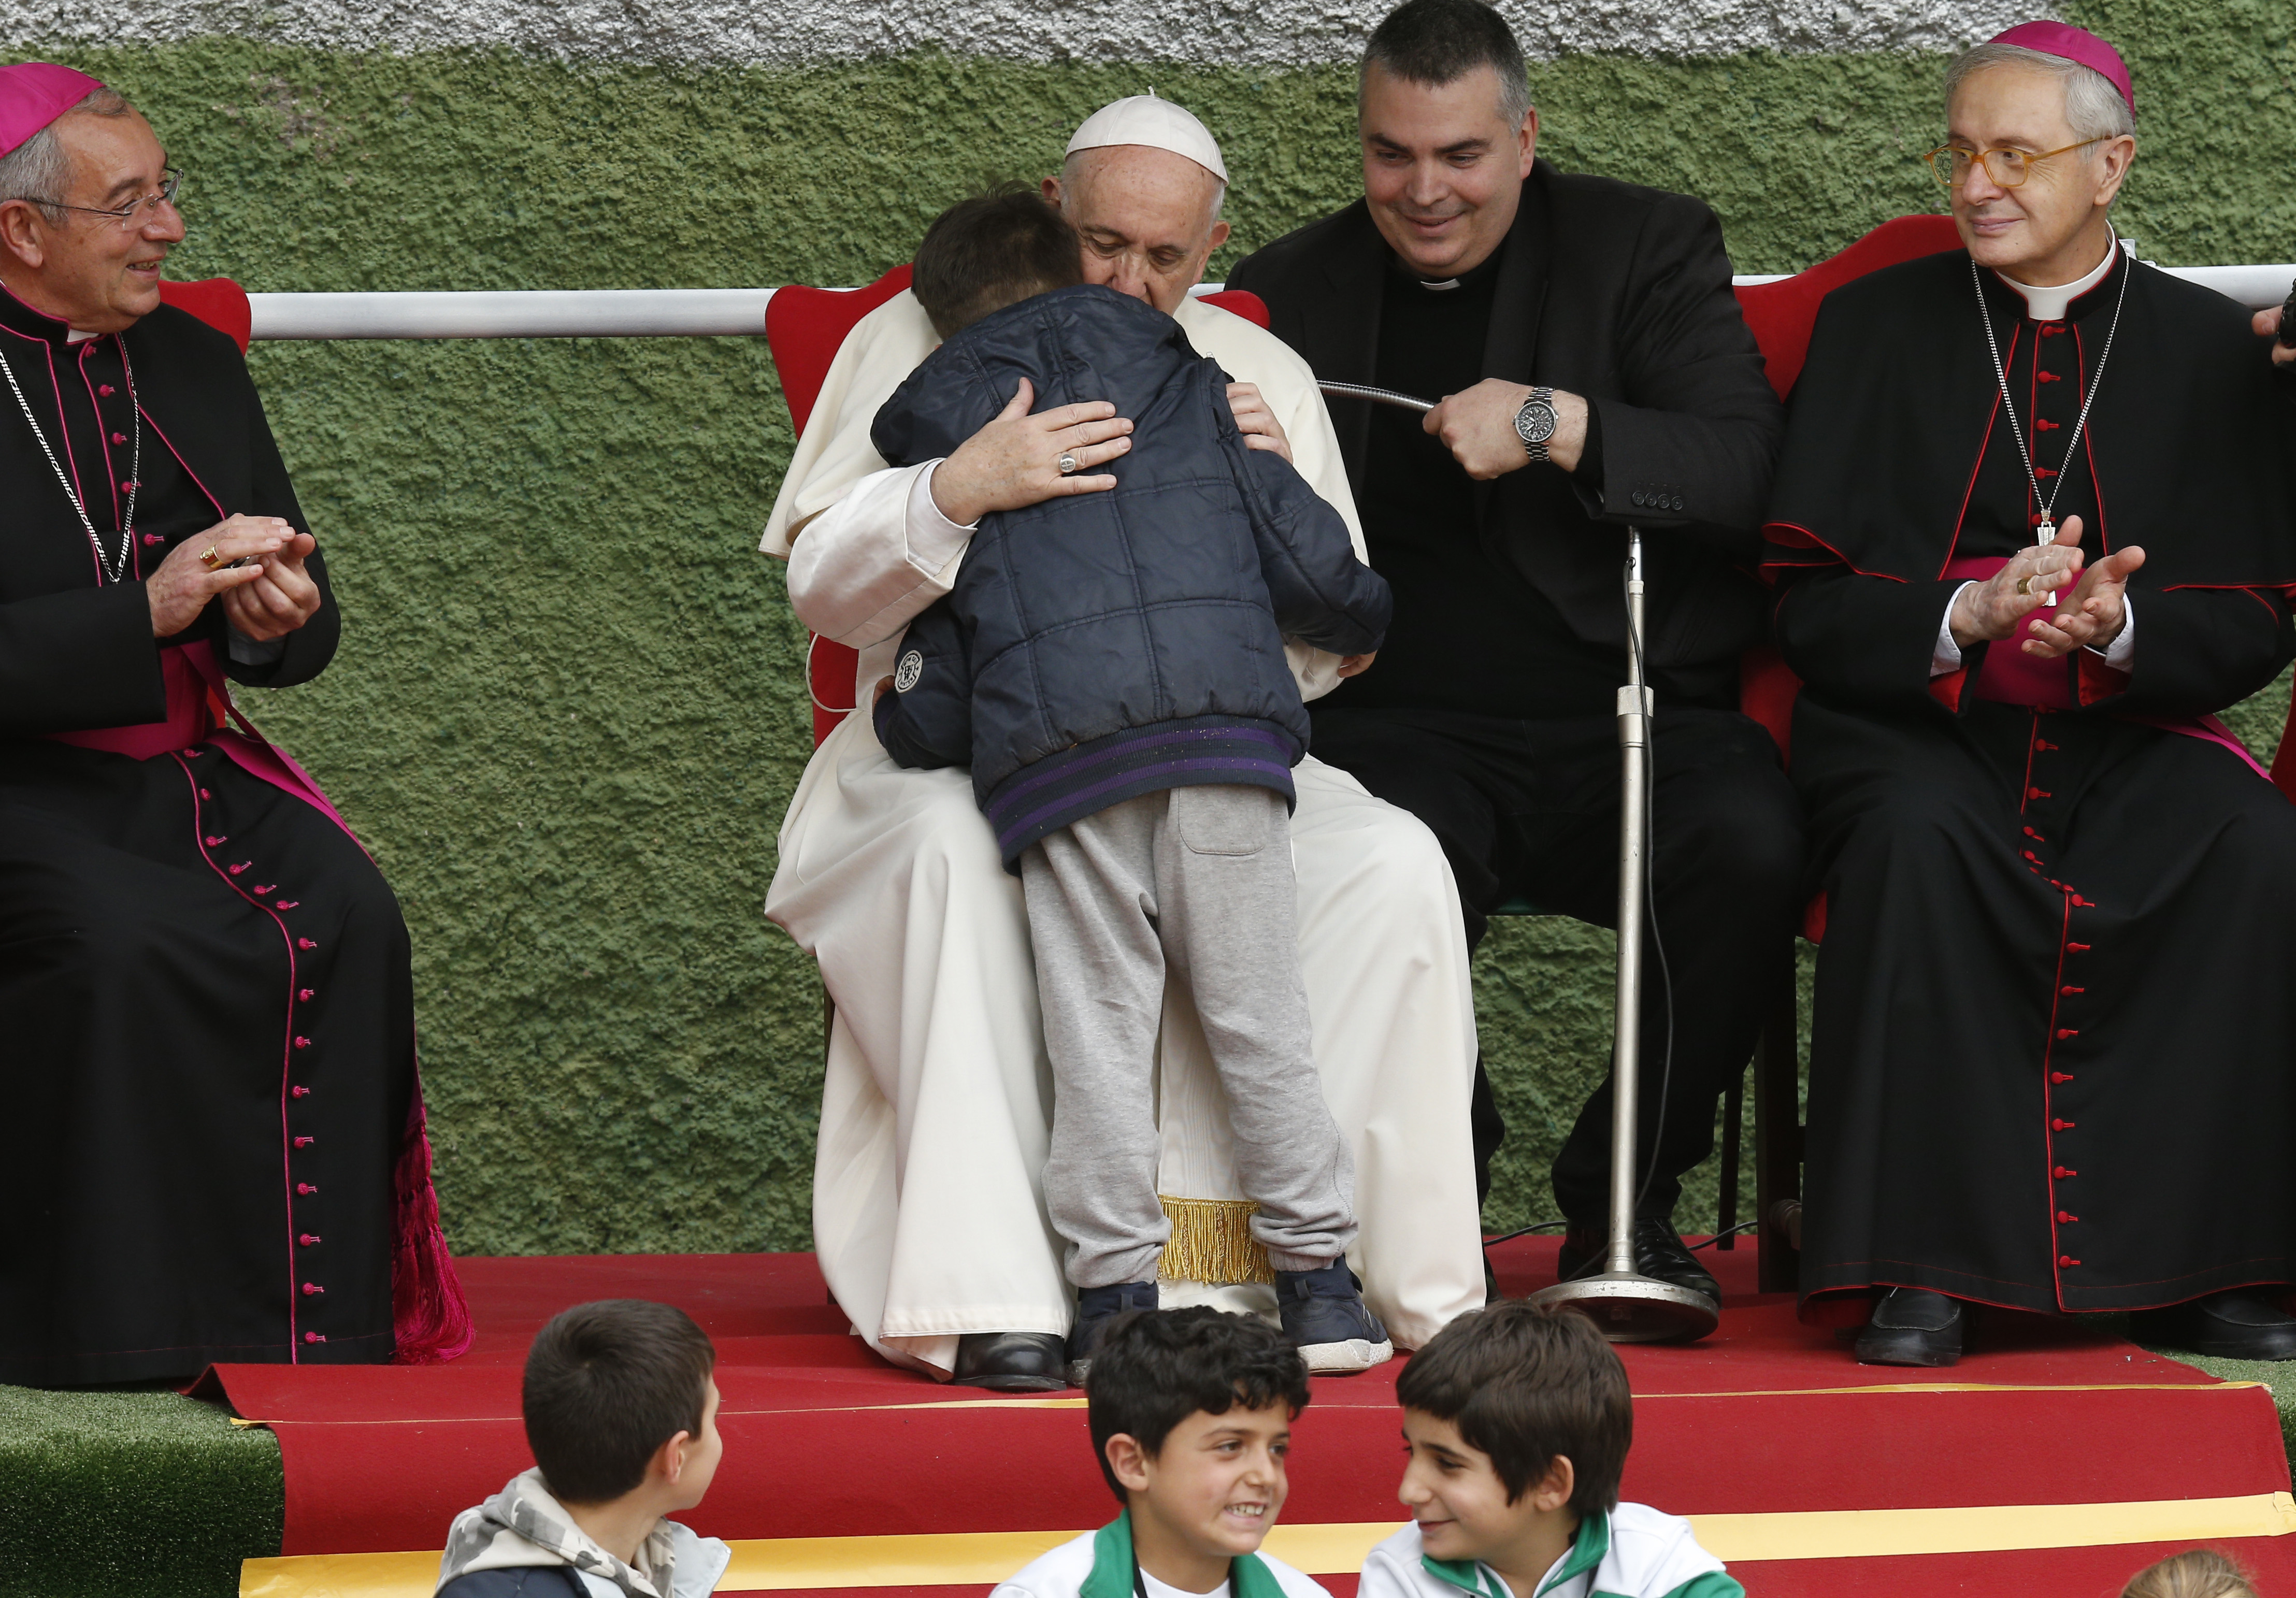 'Is my dad in heaven?' little boy asks pope